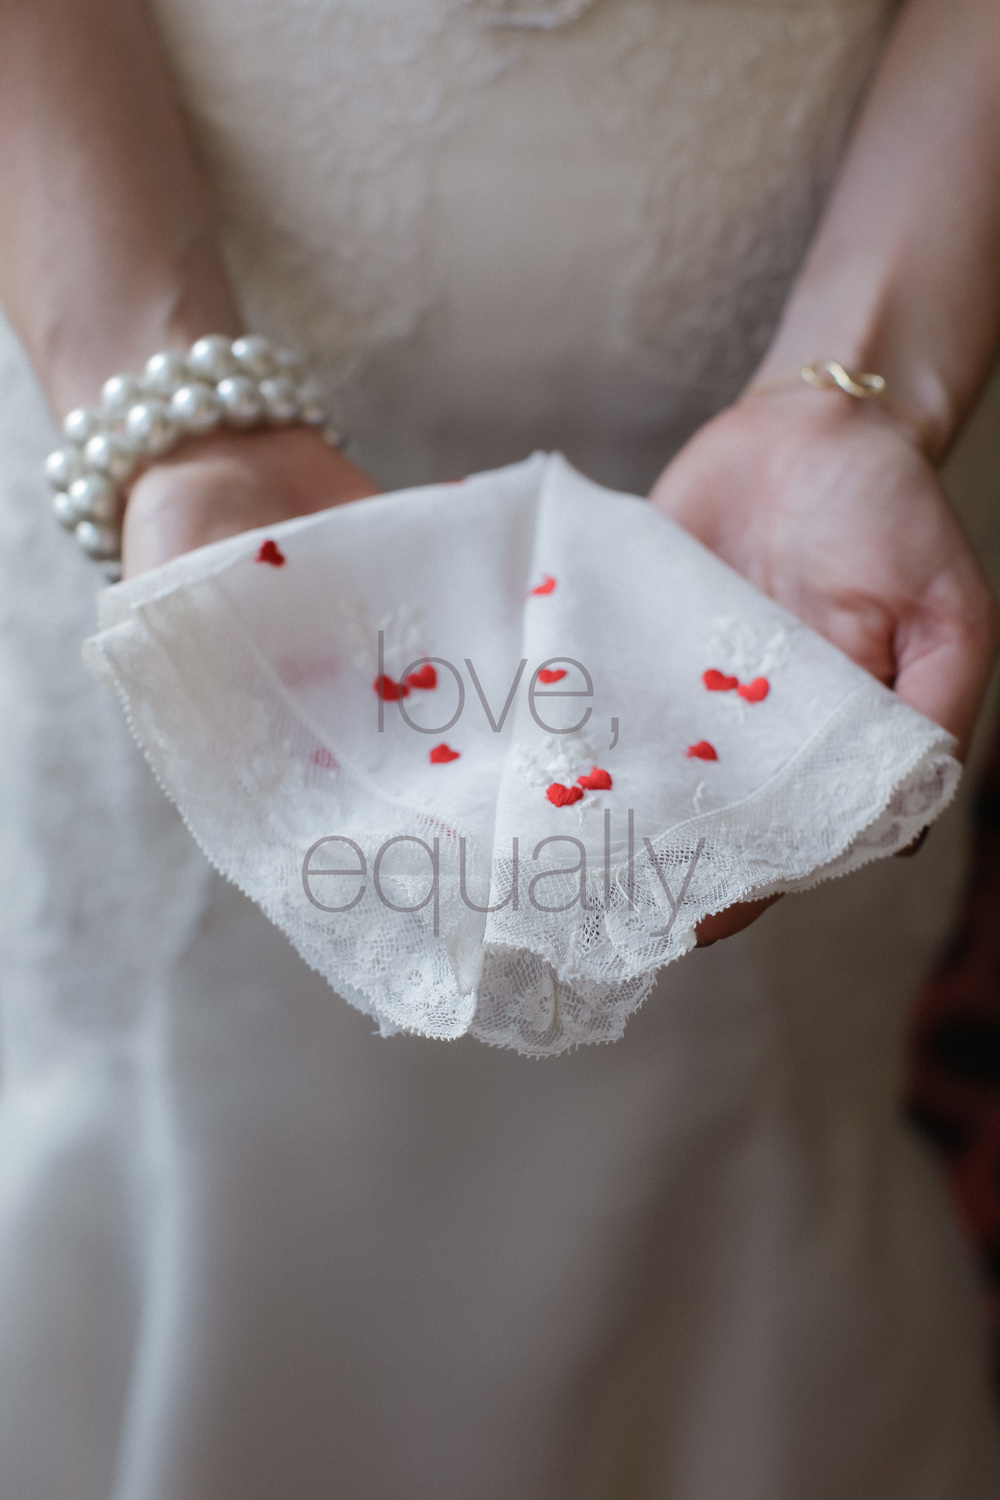 valentines day hotel monaco chicago gay marriage equality brides architecual artifacts glam two brides -006.jpg